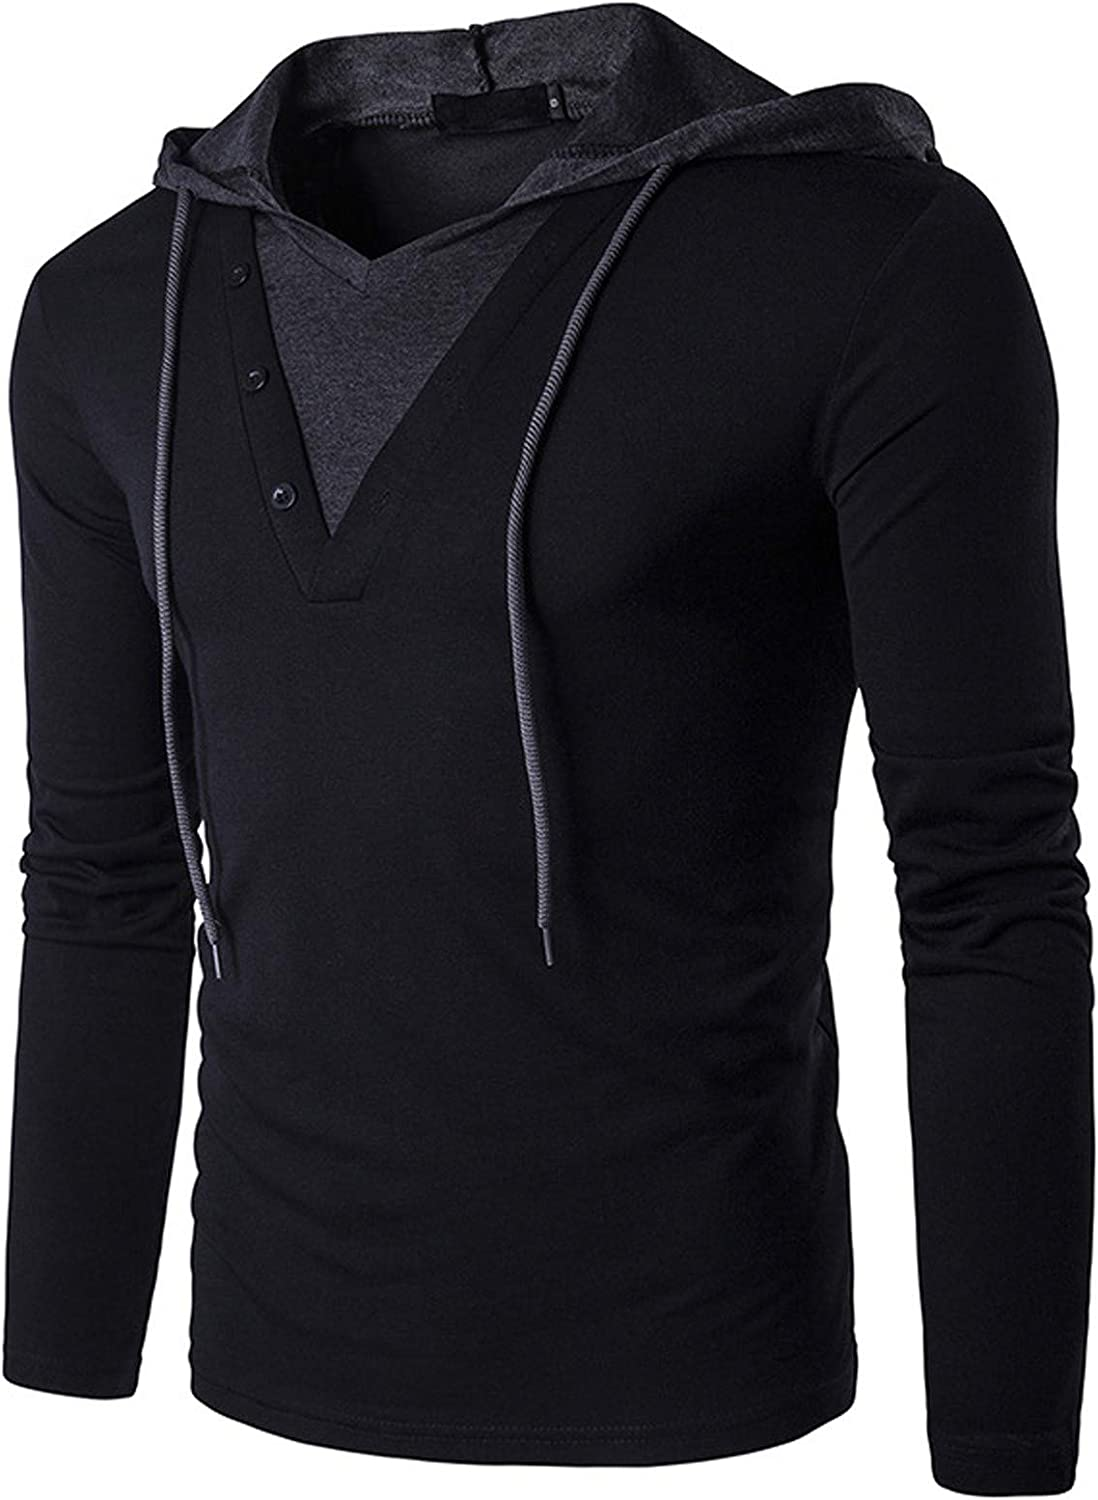 ZSBAYU Men's Fashion Trend Colorblock Long Sleeve T-shirt Hooded Tops Shirts with Hood